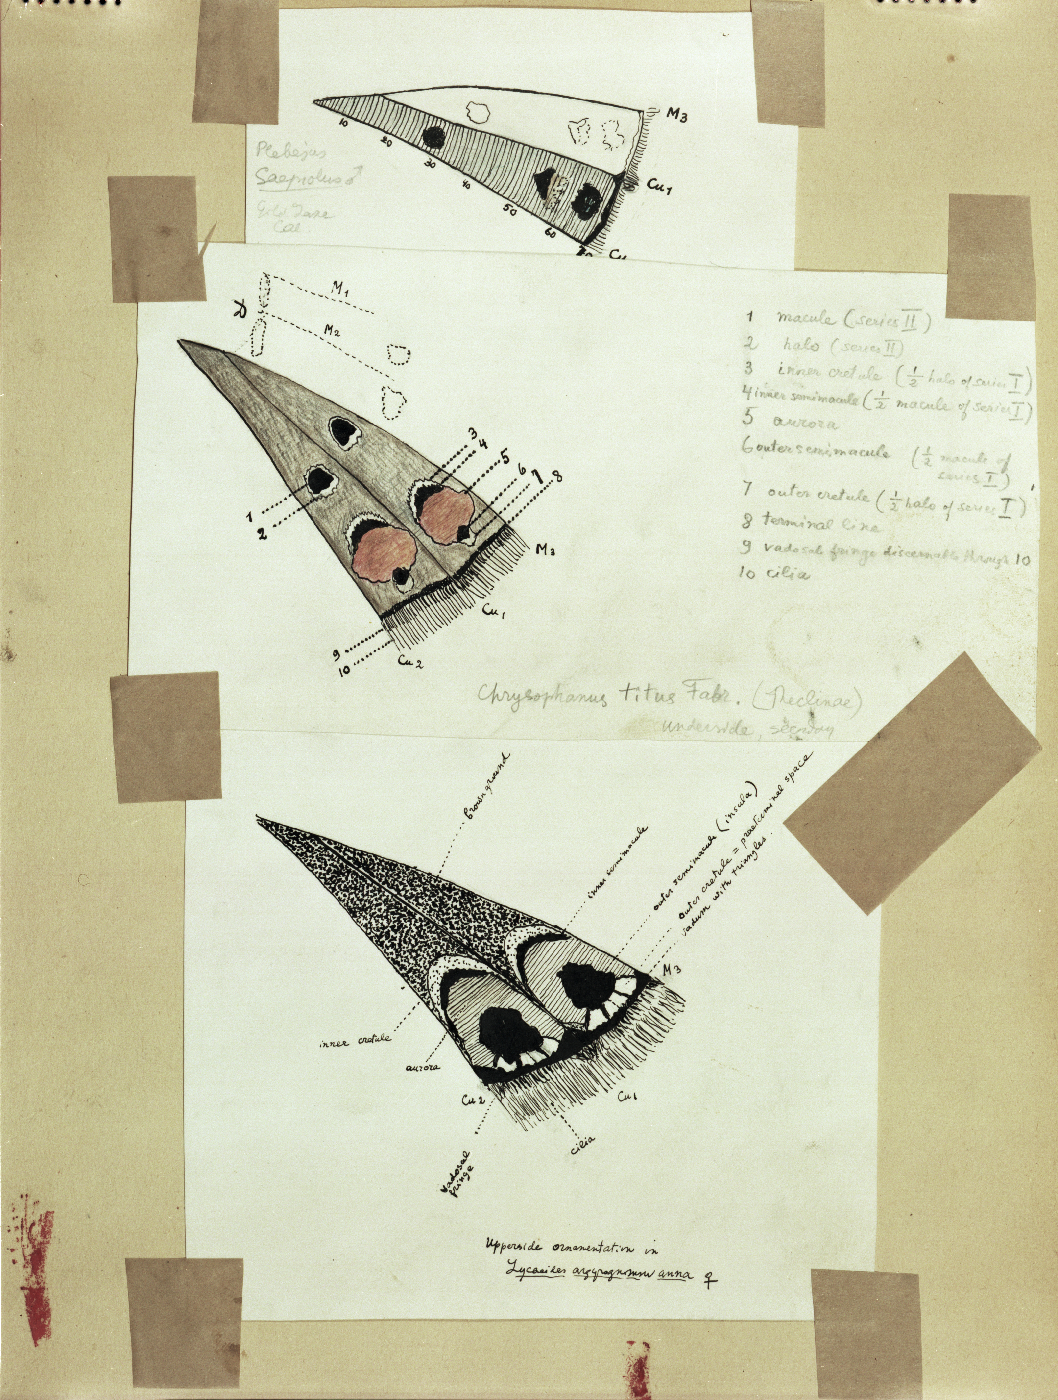 Color Plate 56, comparative maculation schematics of Cells M3 and CuA1 on the undersurface hind wing of three taxa (© Vladimir Nabokov. courtesy of the Vladimir Nabokov Archive at the Berg Collection, New York Public Library, used by permission of the Wylie Agency LLC)